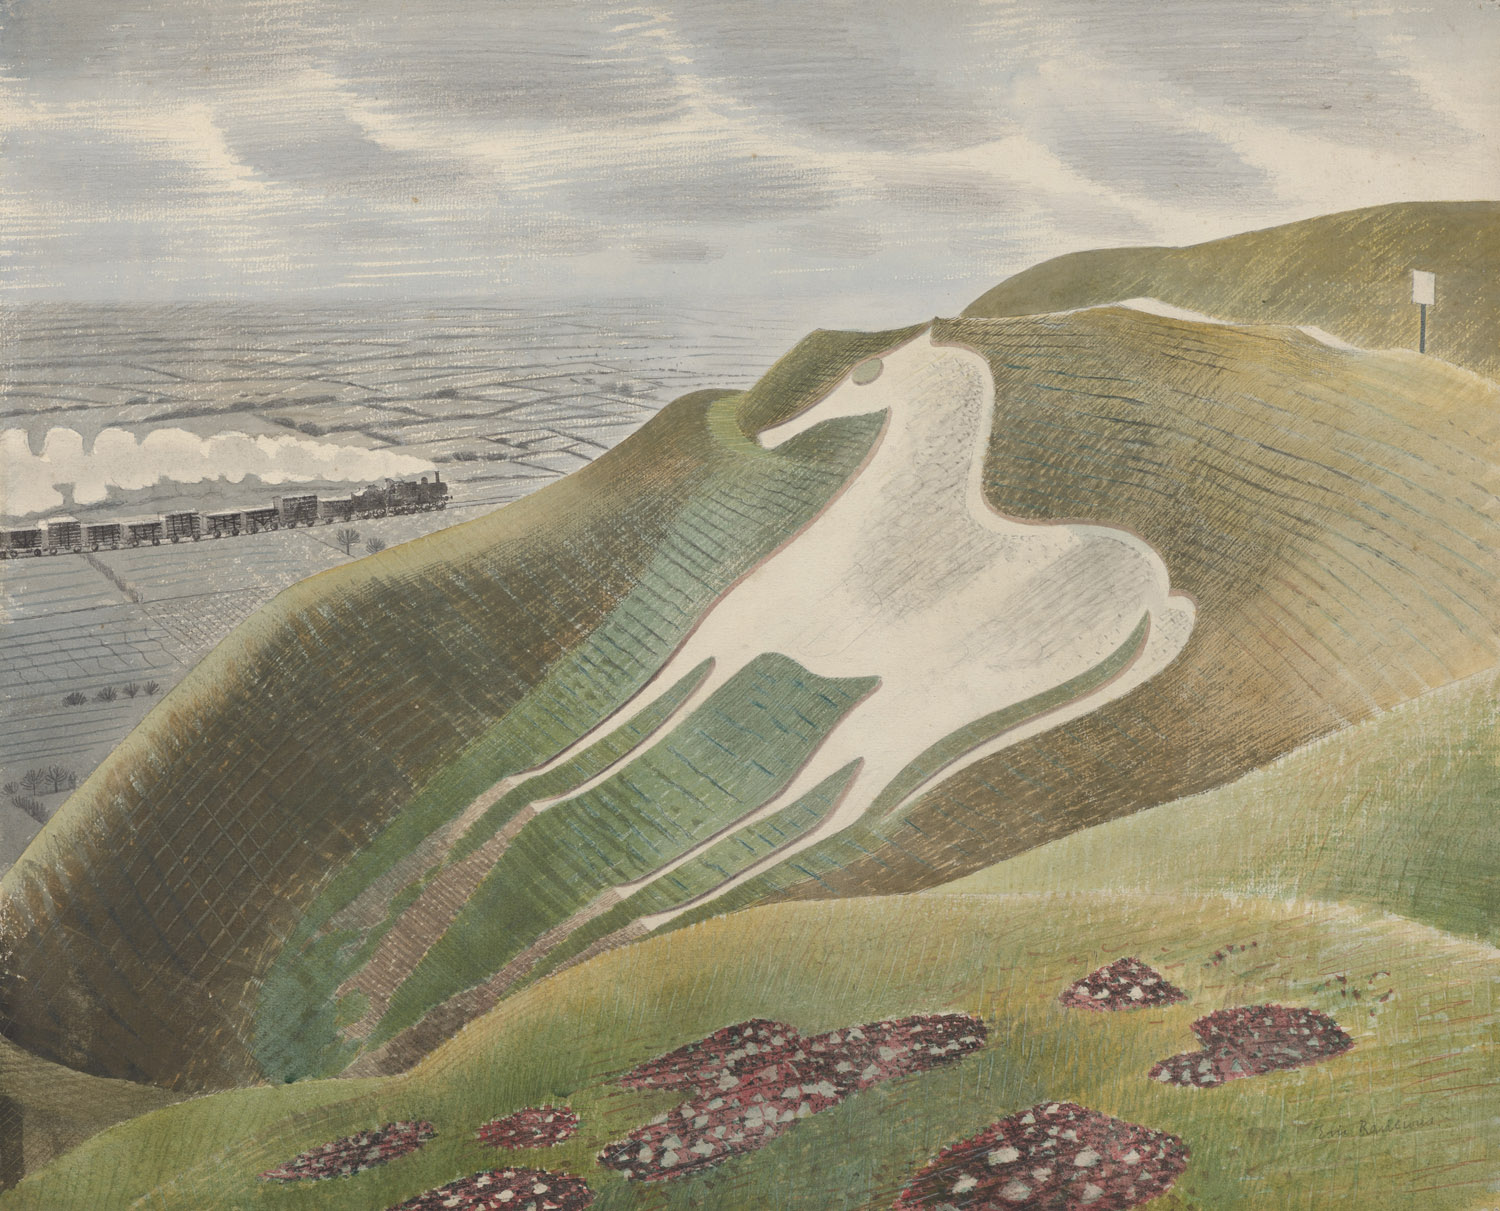 Eric Ravilious, The Westbury Horse, 1939. Towner Art Gallery, Eastbourne